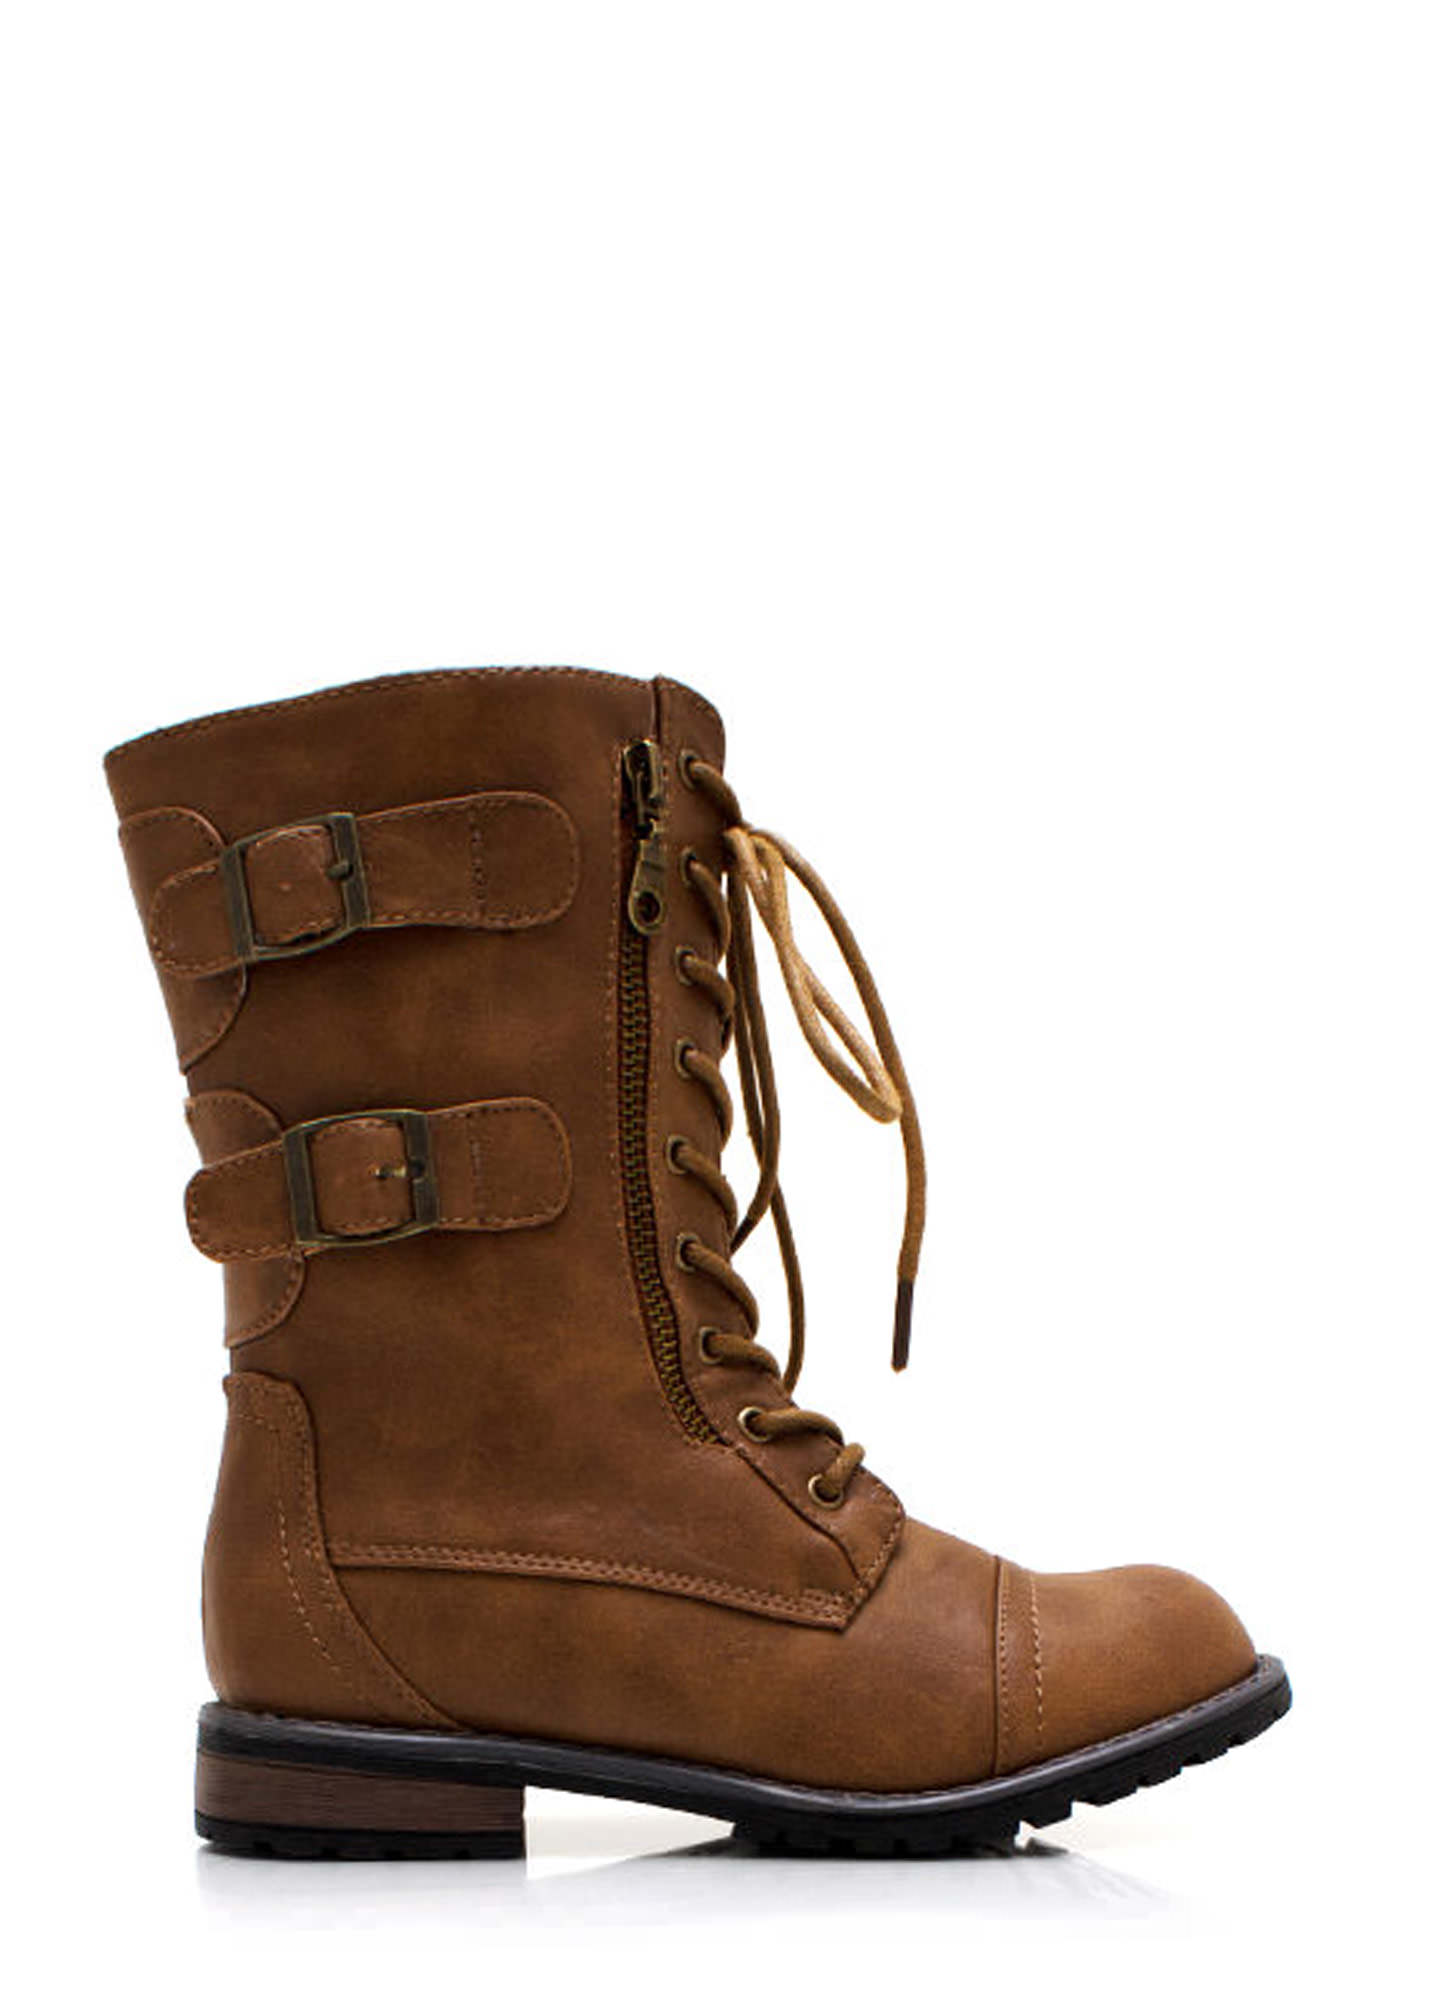 Buckled In Zippy Combat Boots CAMEL